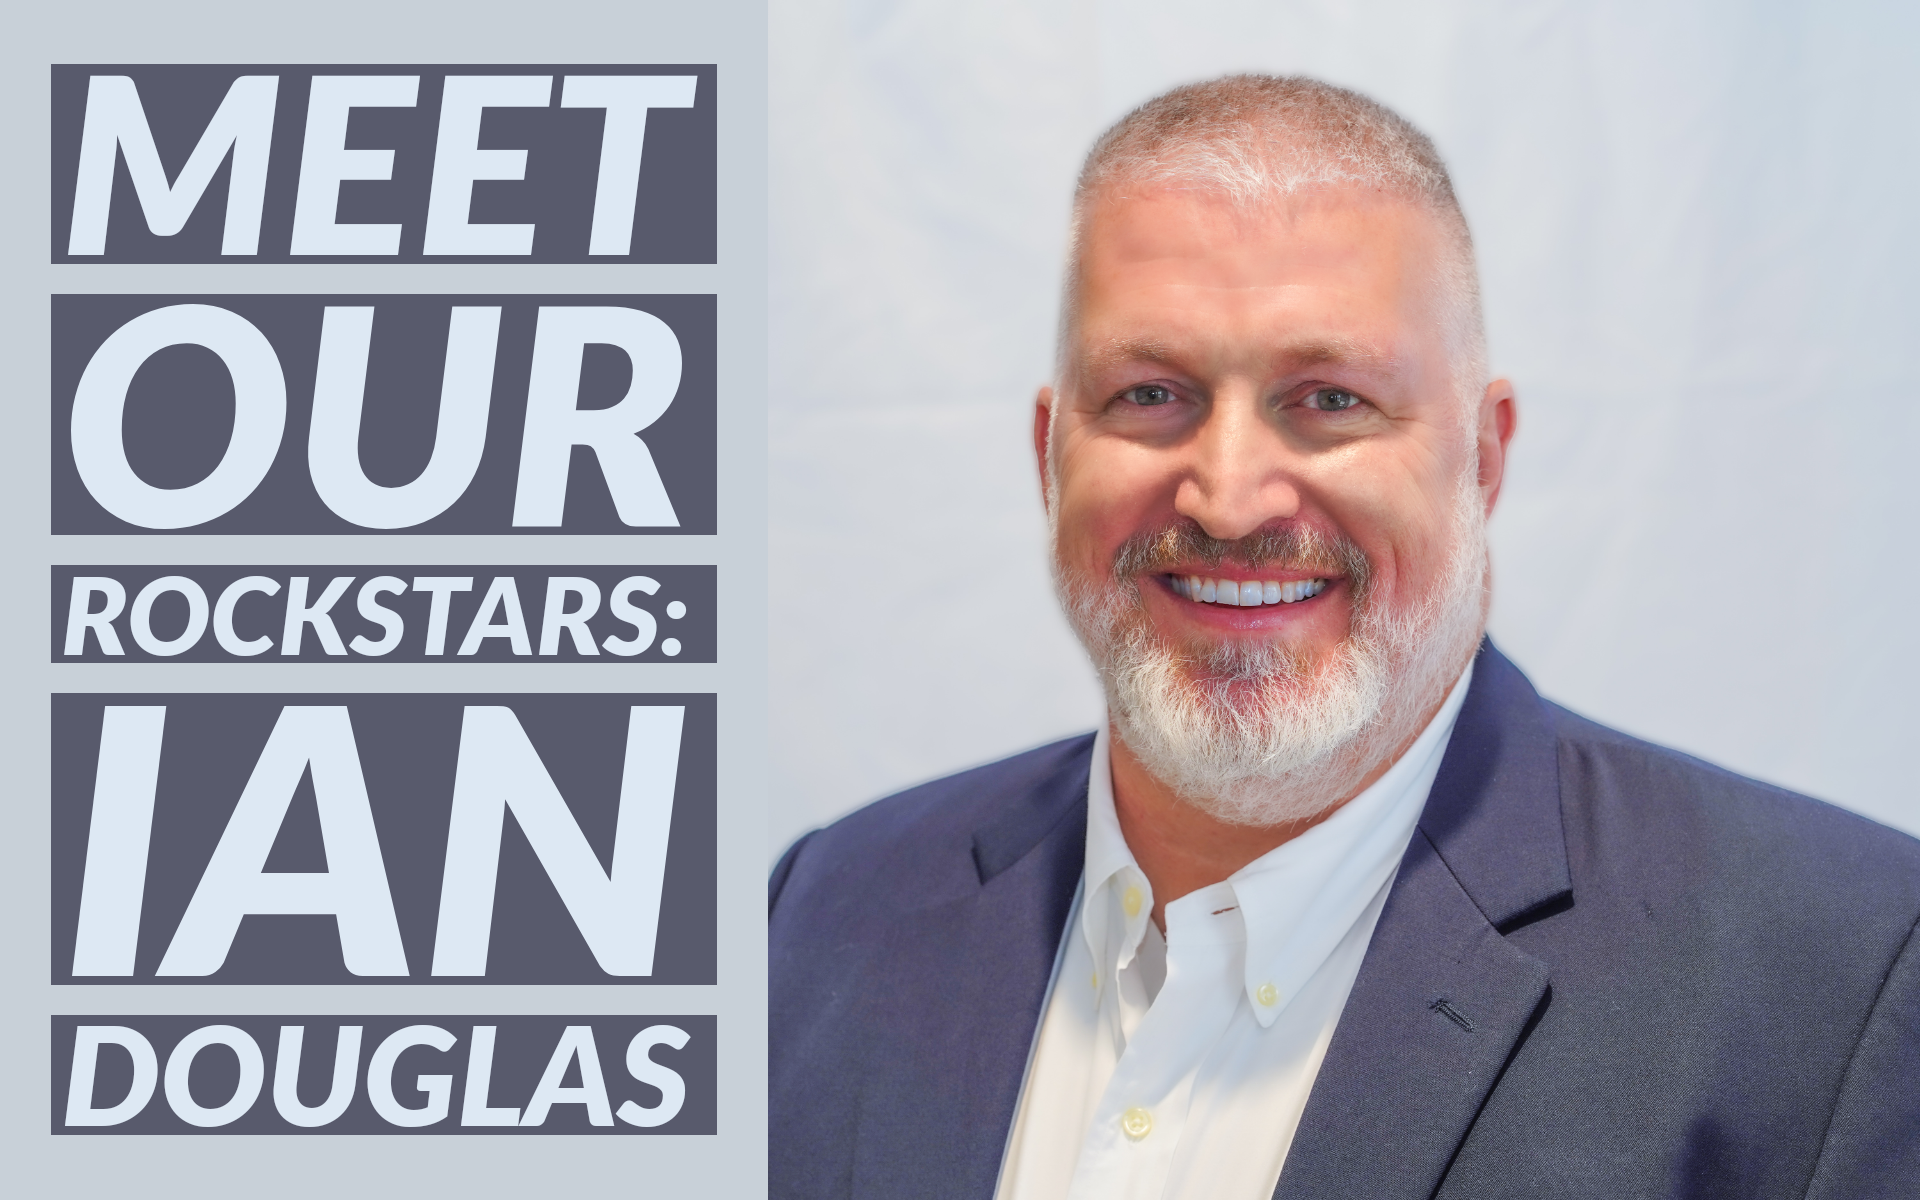 Meet Our Rockstars: Ian Douglas